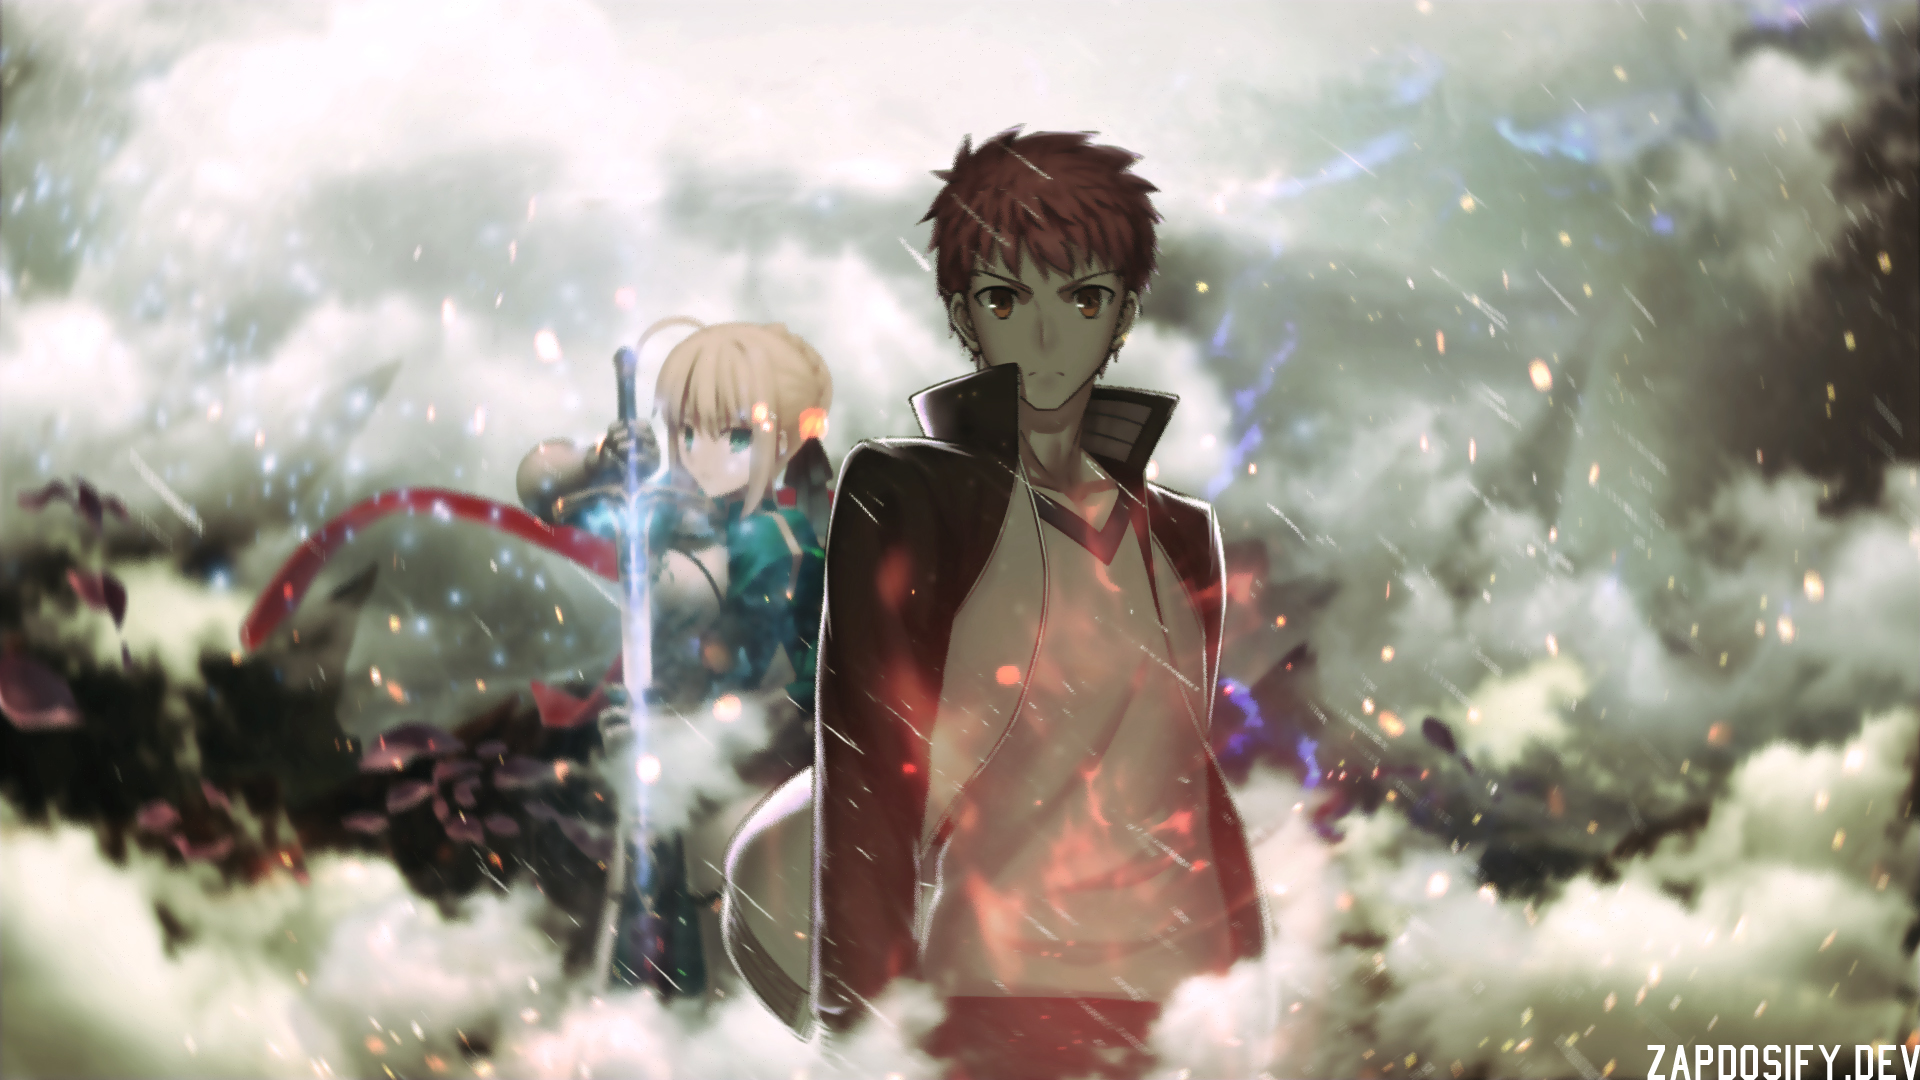 Fate Stay Night Hd Wallpaper 2010638 Zerochan Anime Image Board